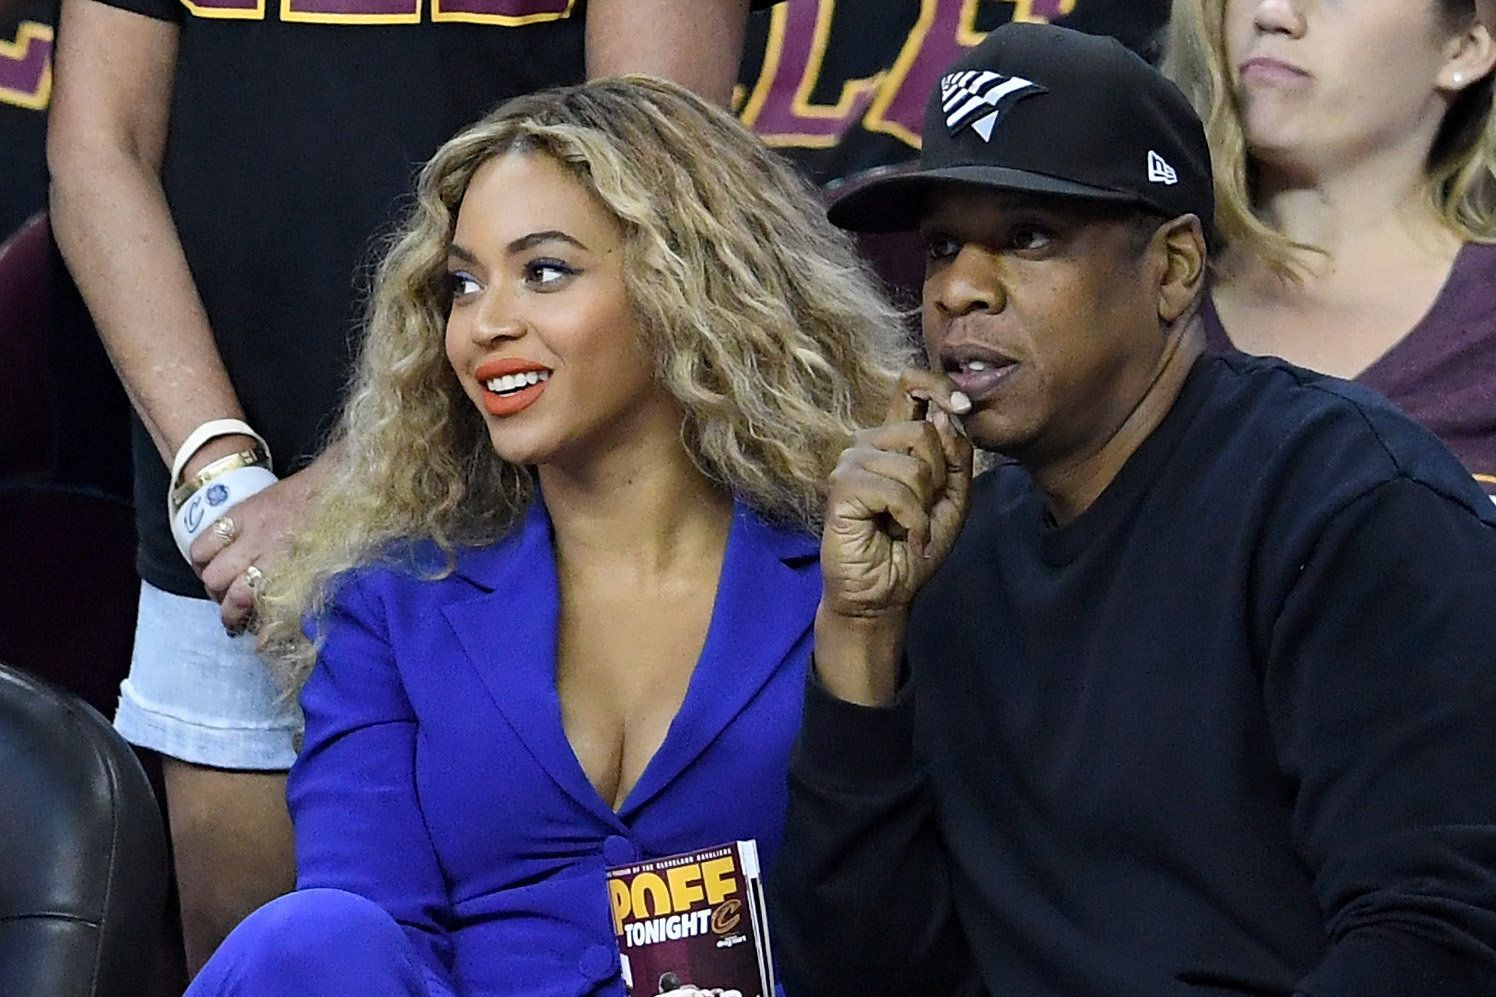 CLEVELAND, OH - JUNE 16:  Beyonce and Jay-Z sit courtside for Game 6 of the 2016 NBA Finals at Quicken Loans Arena on June 16, 2016 in Cleveland, Ohio. NOTE TO USER: User expressly acknowledges and agrees that, by downloading and or using this photograph, User is consenting to the terms and conditions of the Getty Images License Agreement.  (Photo by Jason Miller/Getty Images)